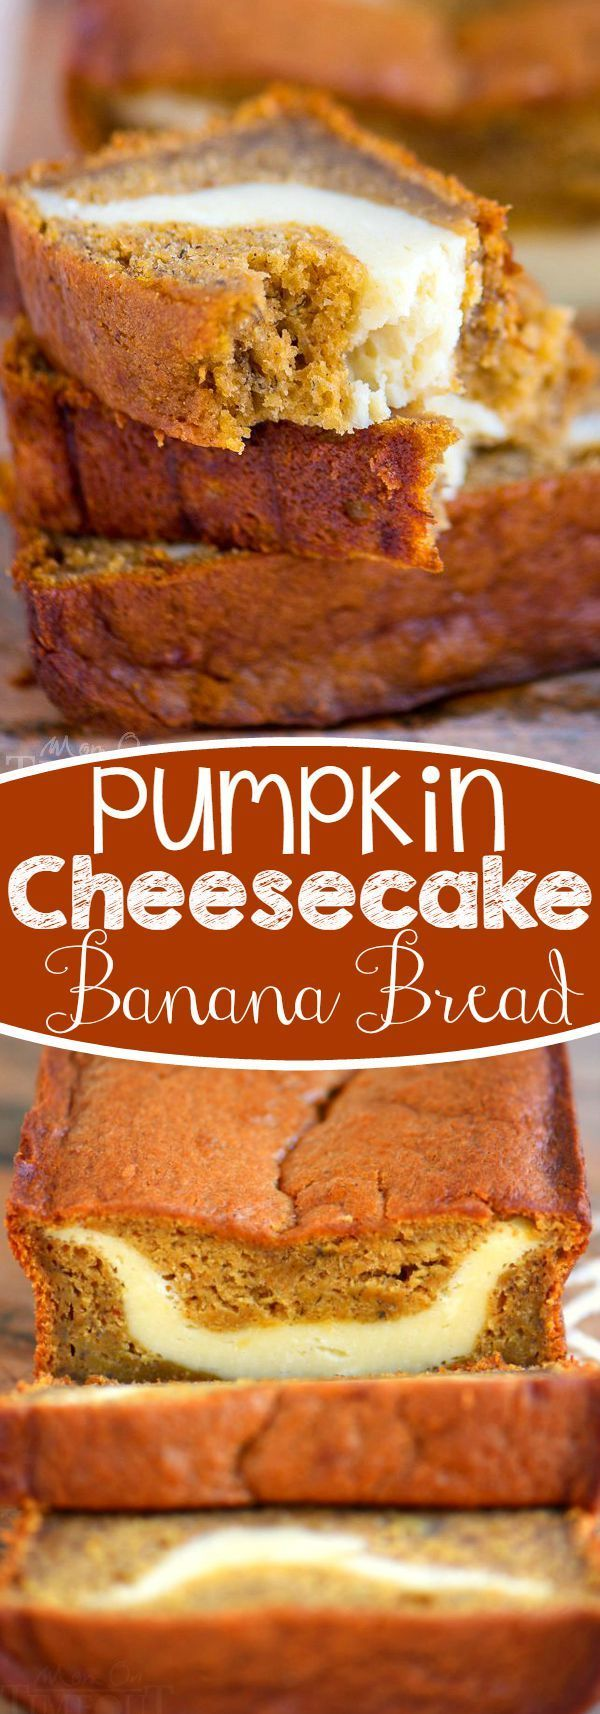 winter clothes online shopping This Pumpkin Cheesecake Banana Bread is perfect for dessert but also doubles as an amazing breakfast   or snack   or lunch  It  39 s pretty amazing no matter what time you eat it  Ultra moist and bursting with pumpkin flavor